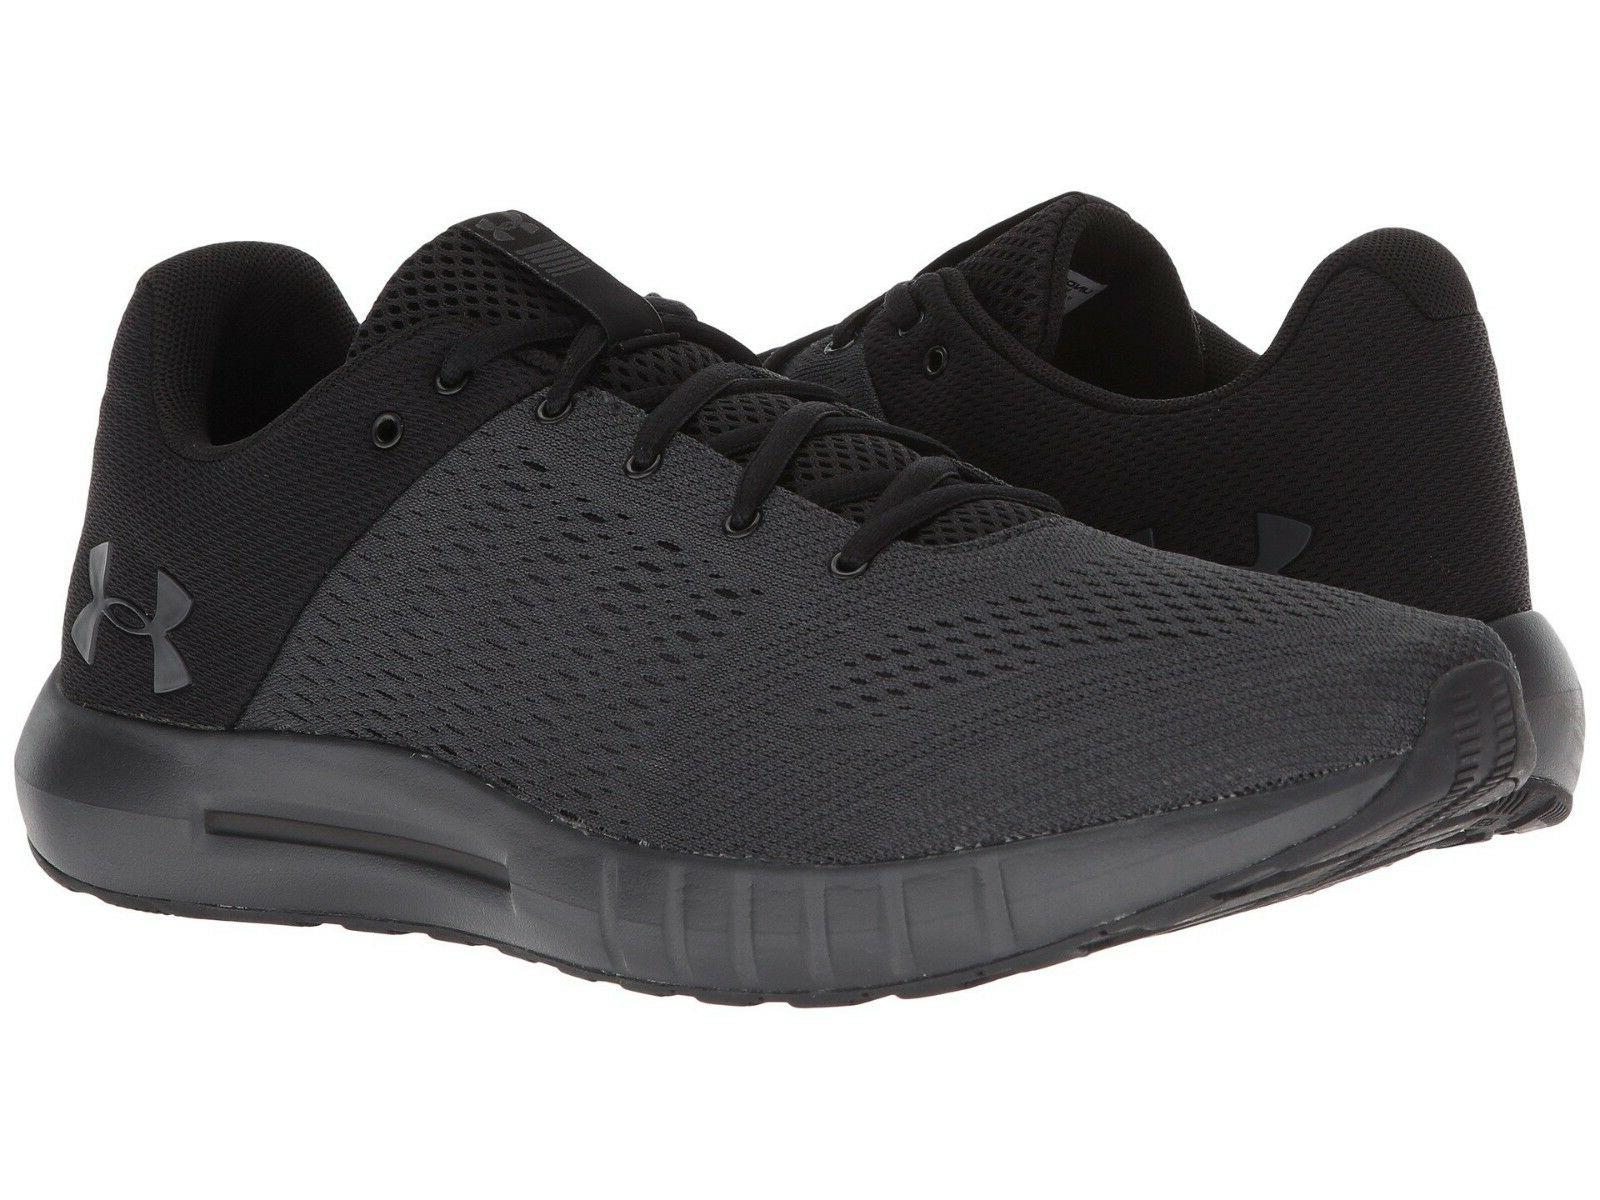 Under Armour Men's Micro G Pursuit Running Shoes Anthracite/